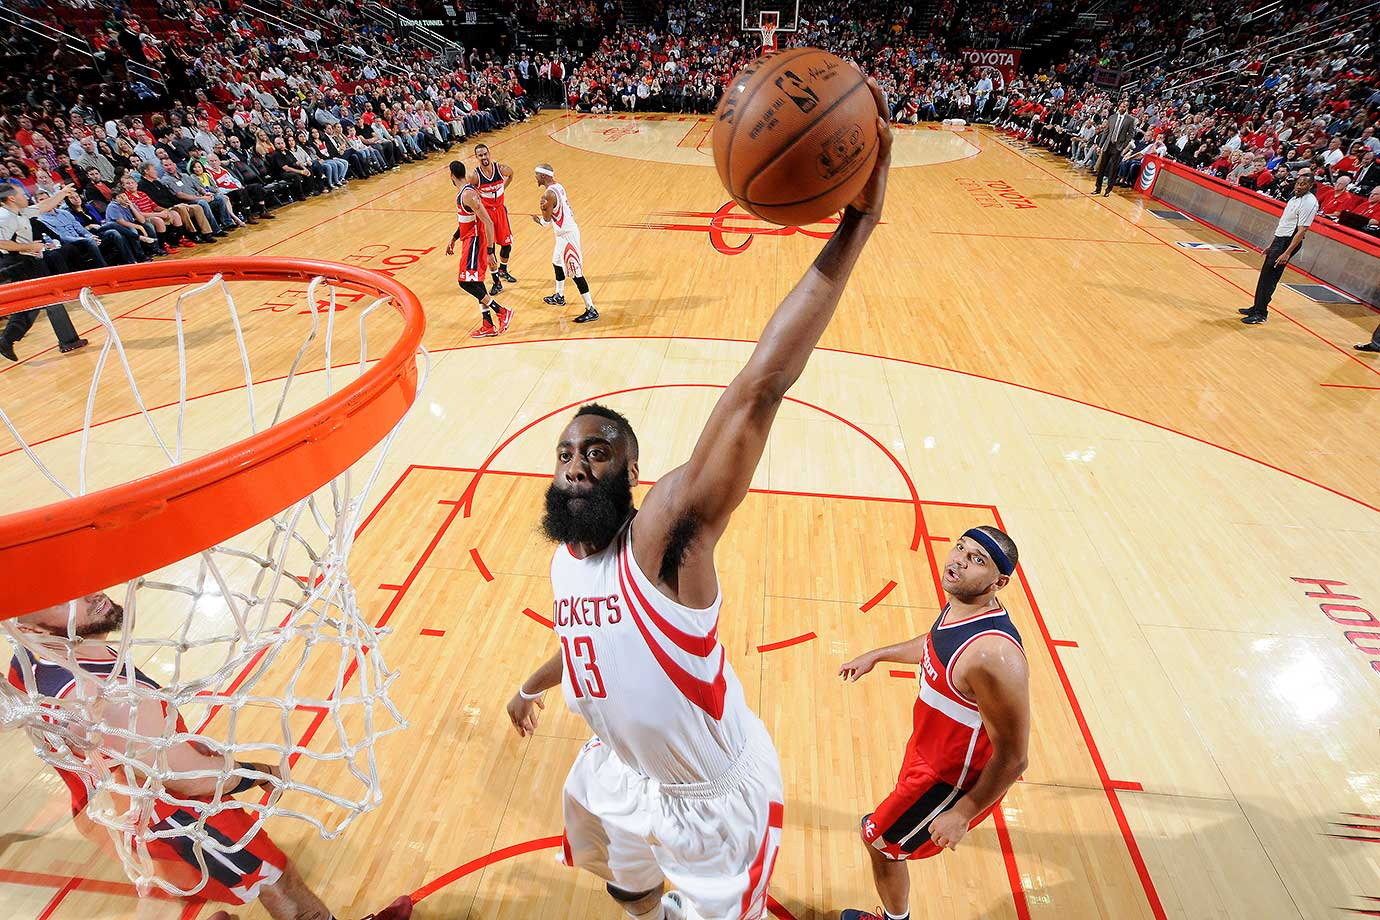 James Harden of the Houston Rockets goes for the dunk during the game against the Washington Wizards at the Toyota Center in Houston.